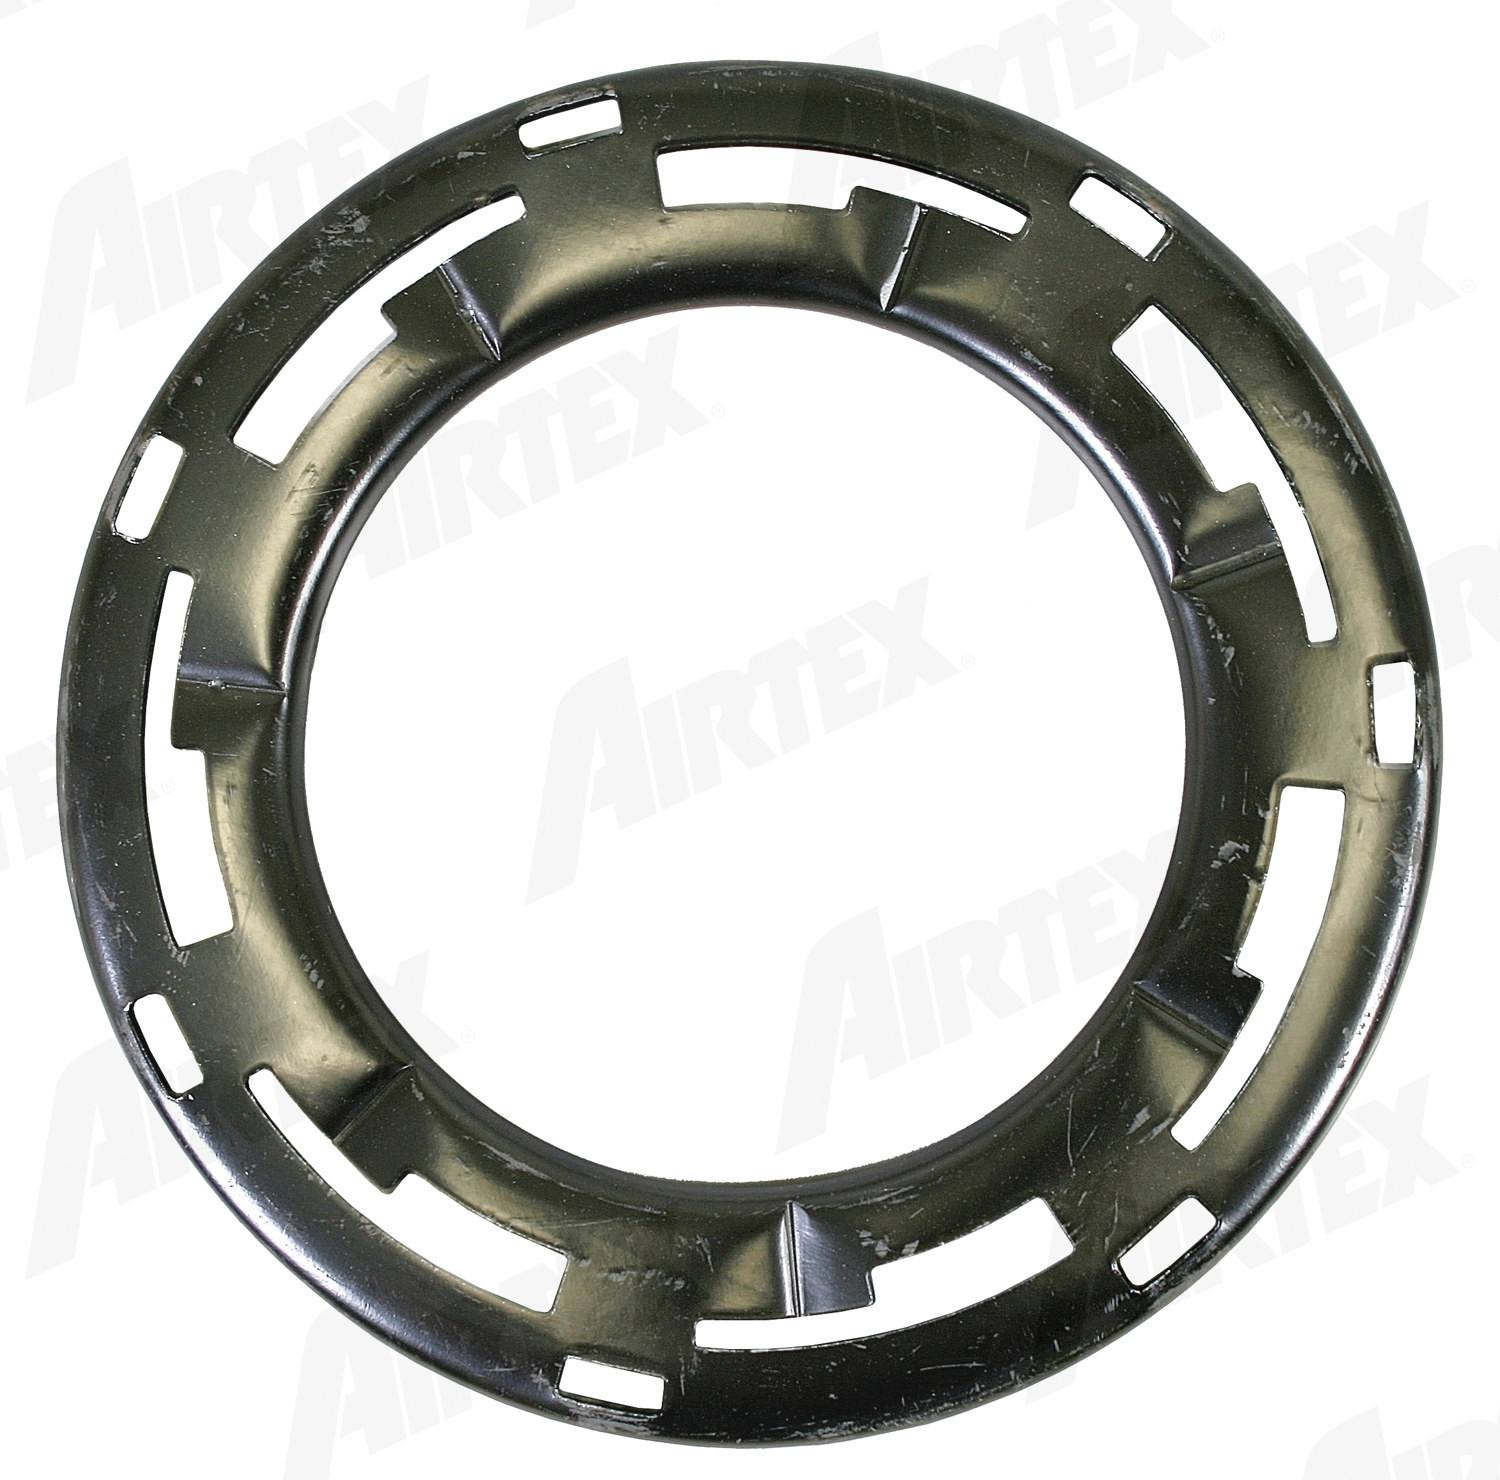 AIRTEX AUTOMOTIVE DIVISION - Fuel Tank Lock Ring - ATN LR7003